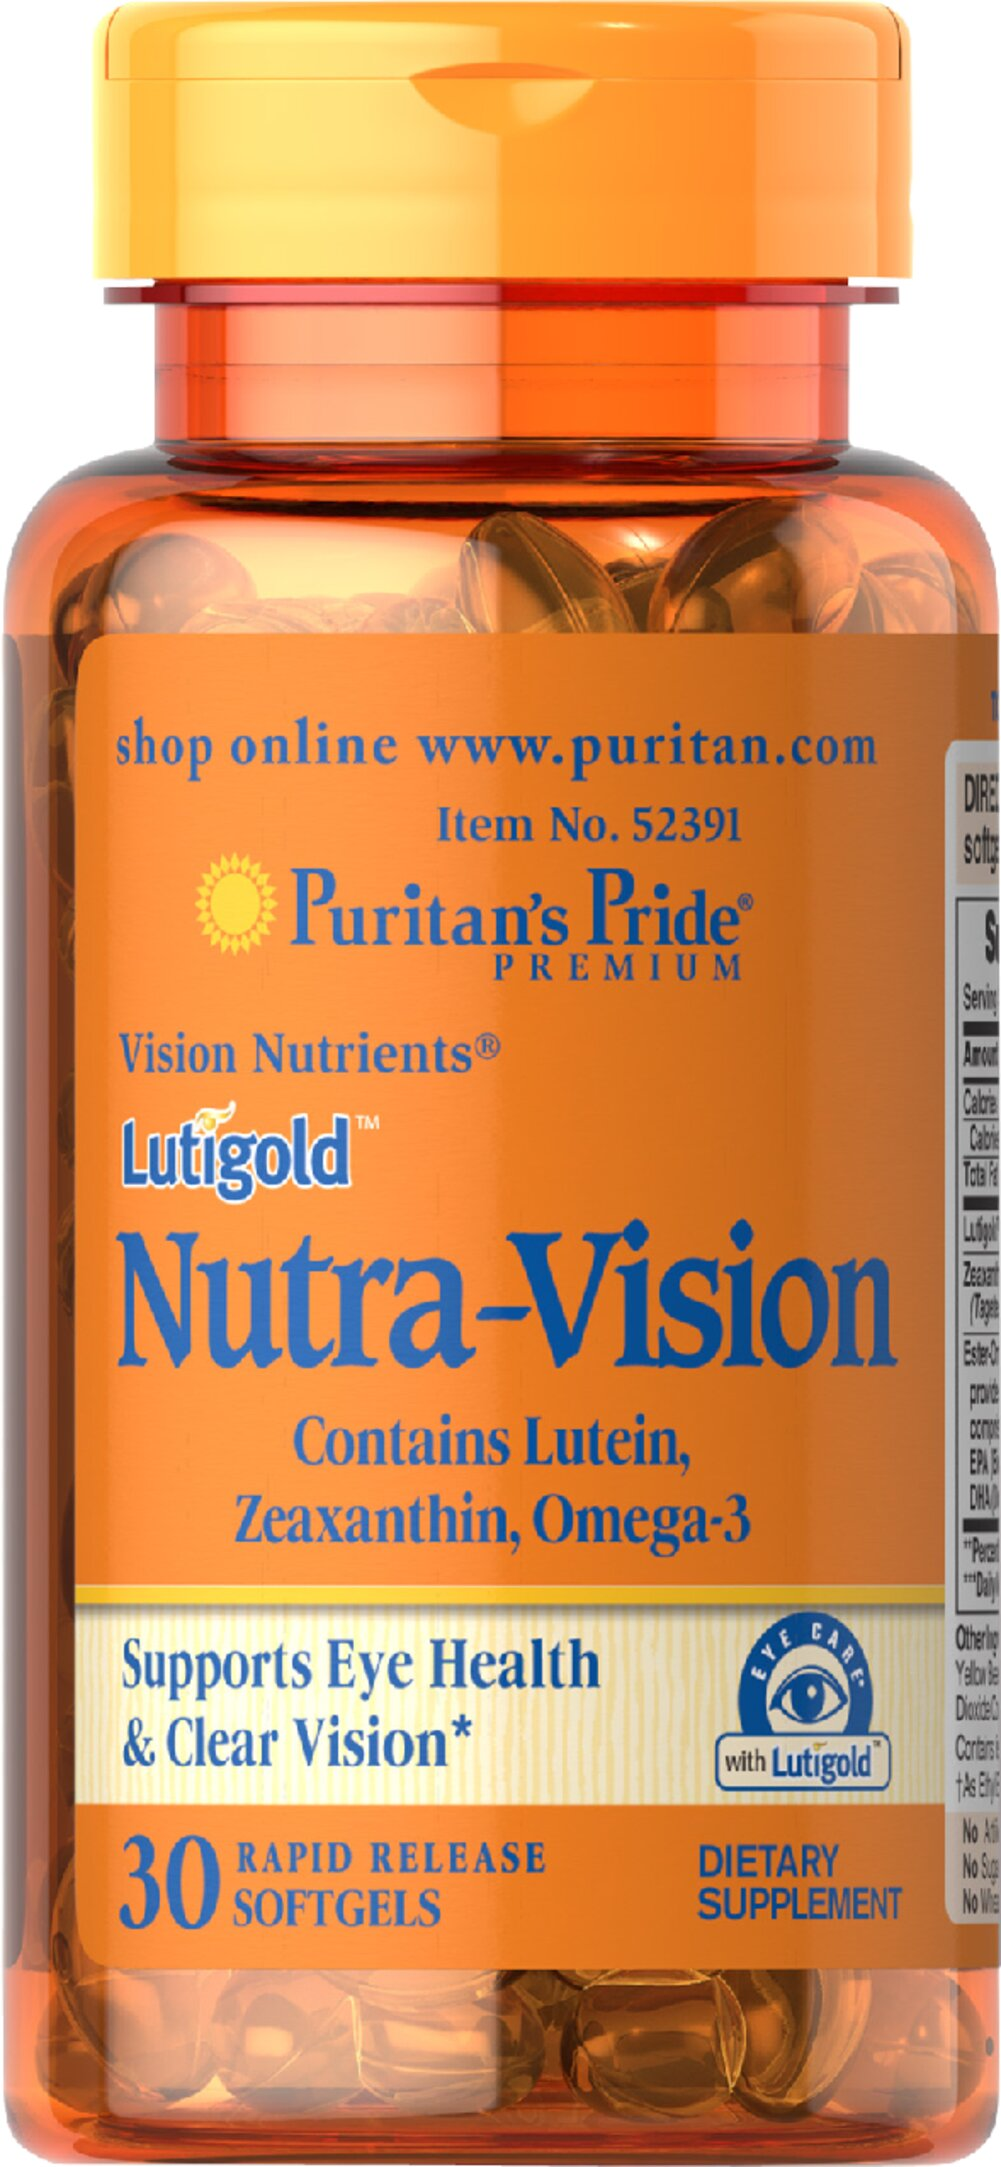 Lutigold™ Nutra-Vision with Lutein, Zeaxanthin & Omega-3 <p>Supports eye health and clear vision**</p><p>Contains Lutein, Zeaxanthin and Omega-3</p><p>Zeaxanthin is selectively placed in macula's foveal center, the area in the eyes responsible for sharp central vision.</p><p>Rapid release softgels</p><p>The combination of ingredients found in this Nutra-Vision dietary supplement supports eye health and clear vision.** Lutigold™ Lutein